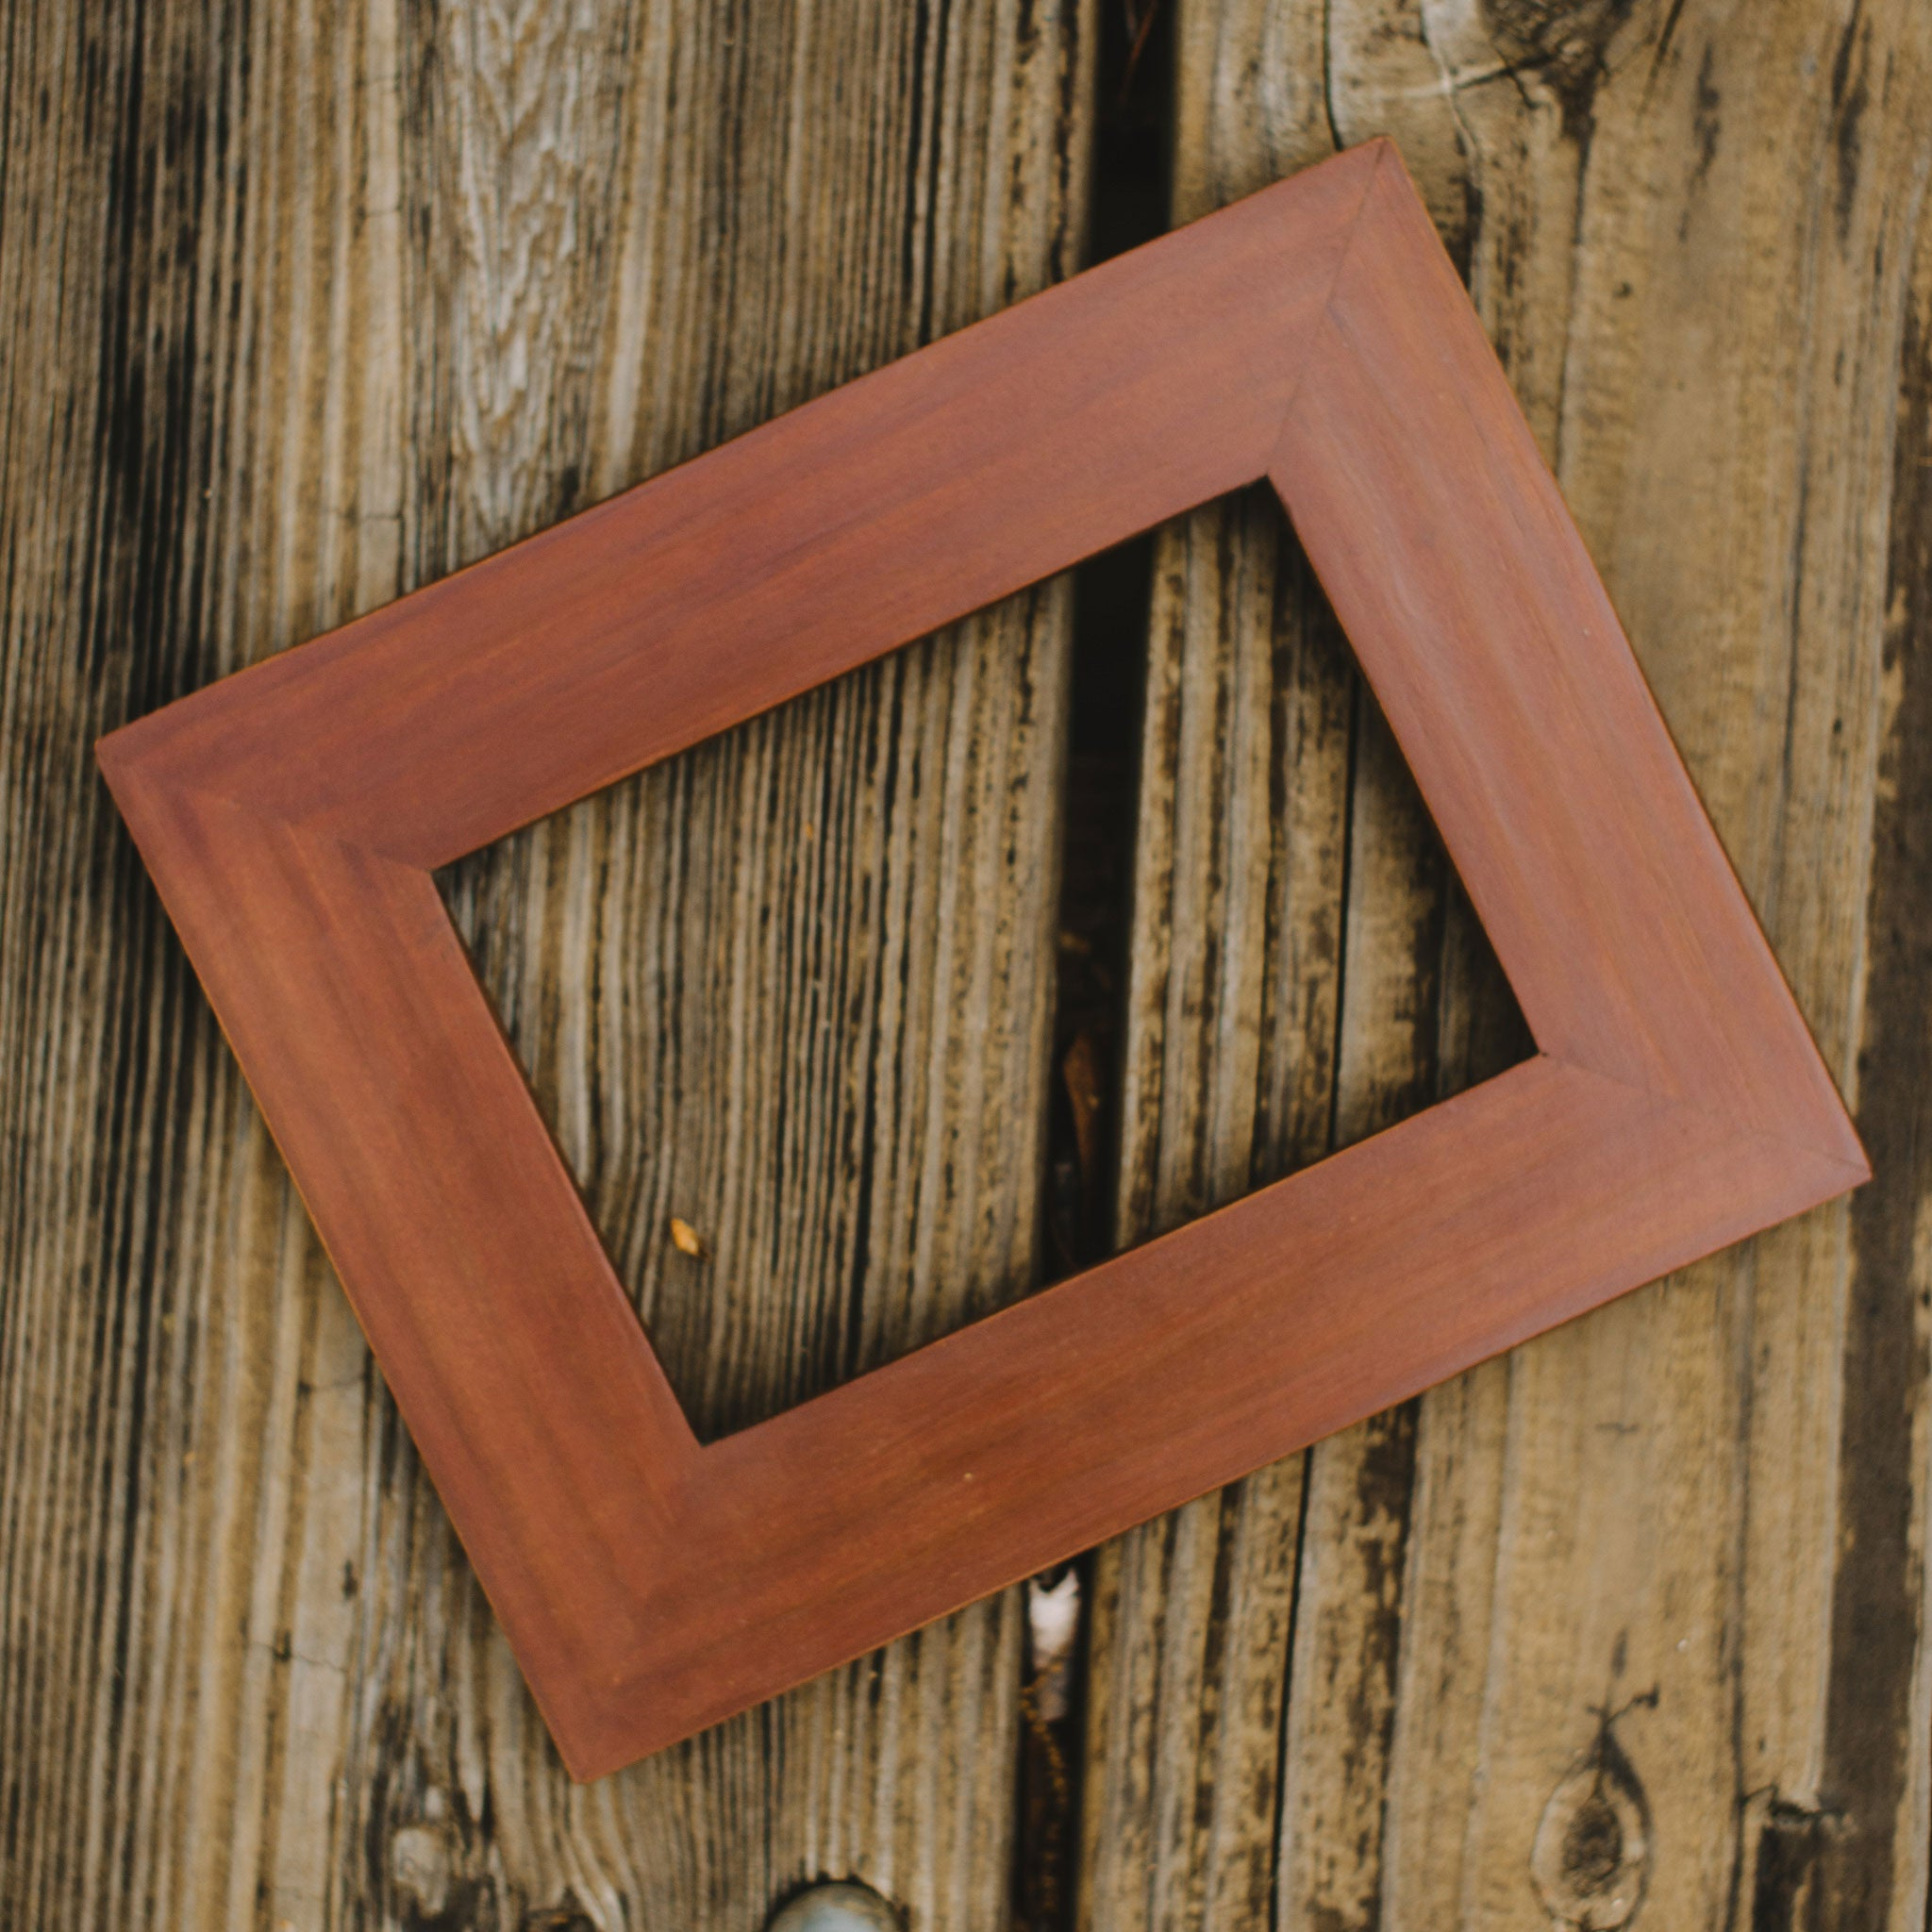 this solid wood picture frame is hand shaped from a plank and topped off with